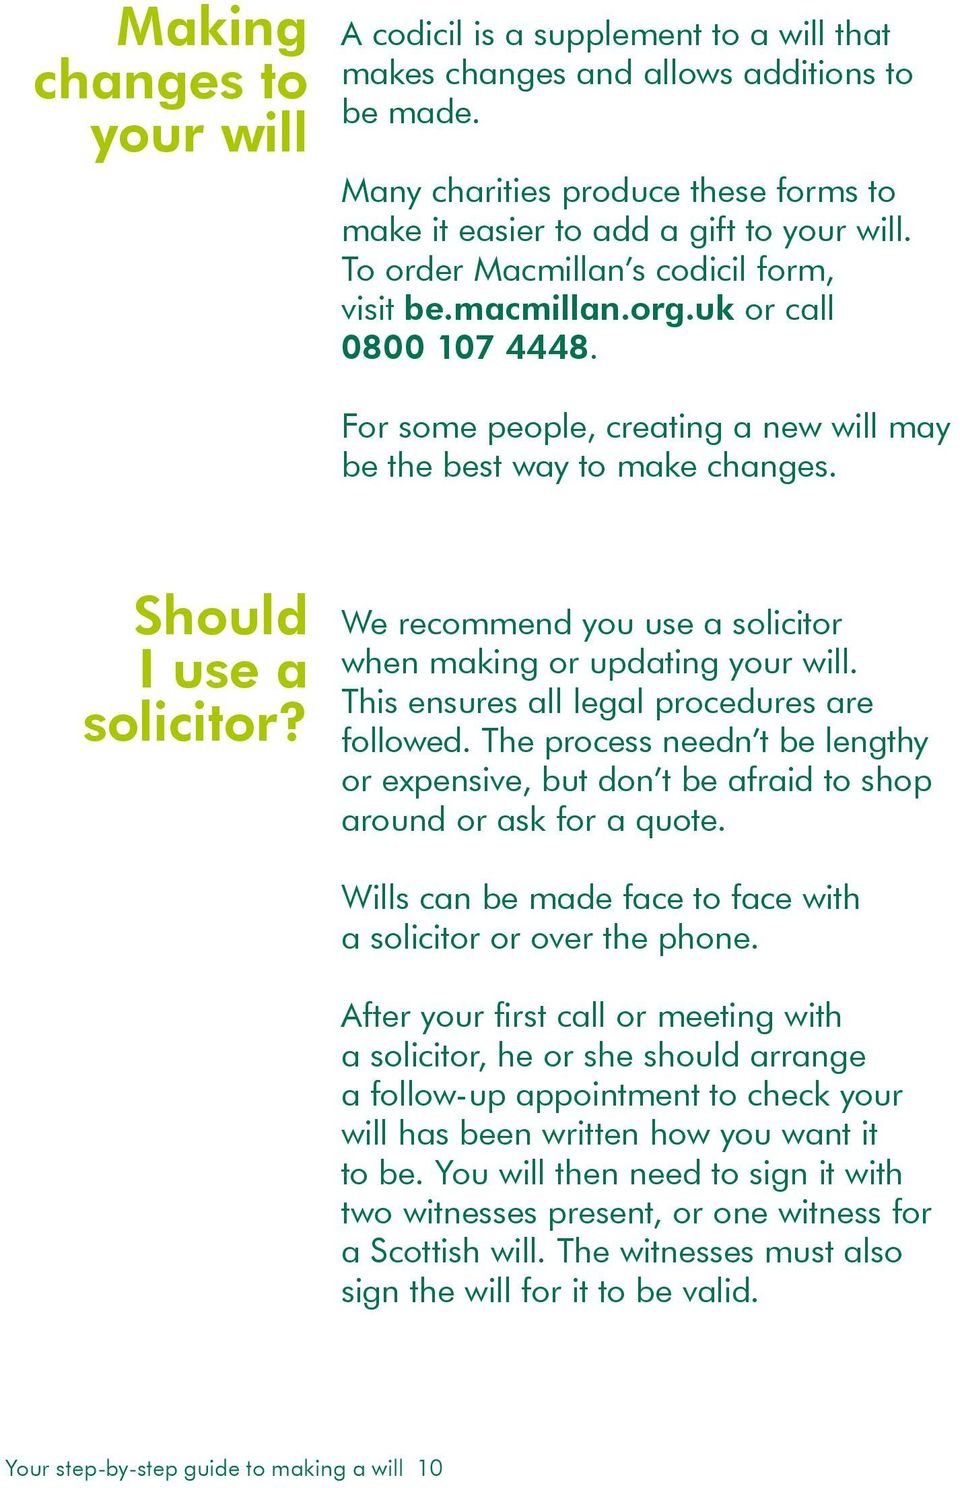 We recommend you use a solicitor when making or updating your will. This ensures all legal procedures are followed.